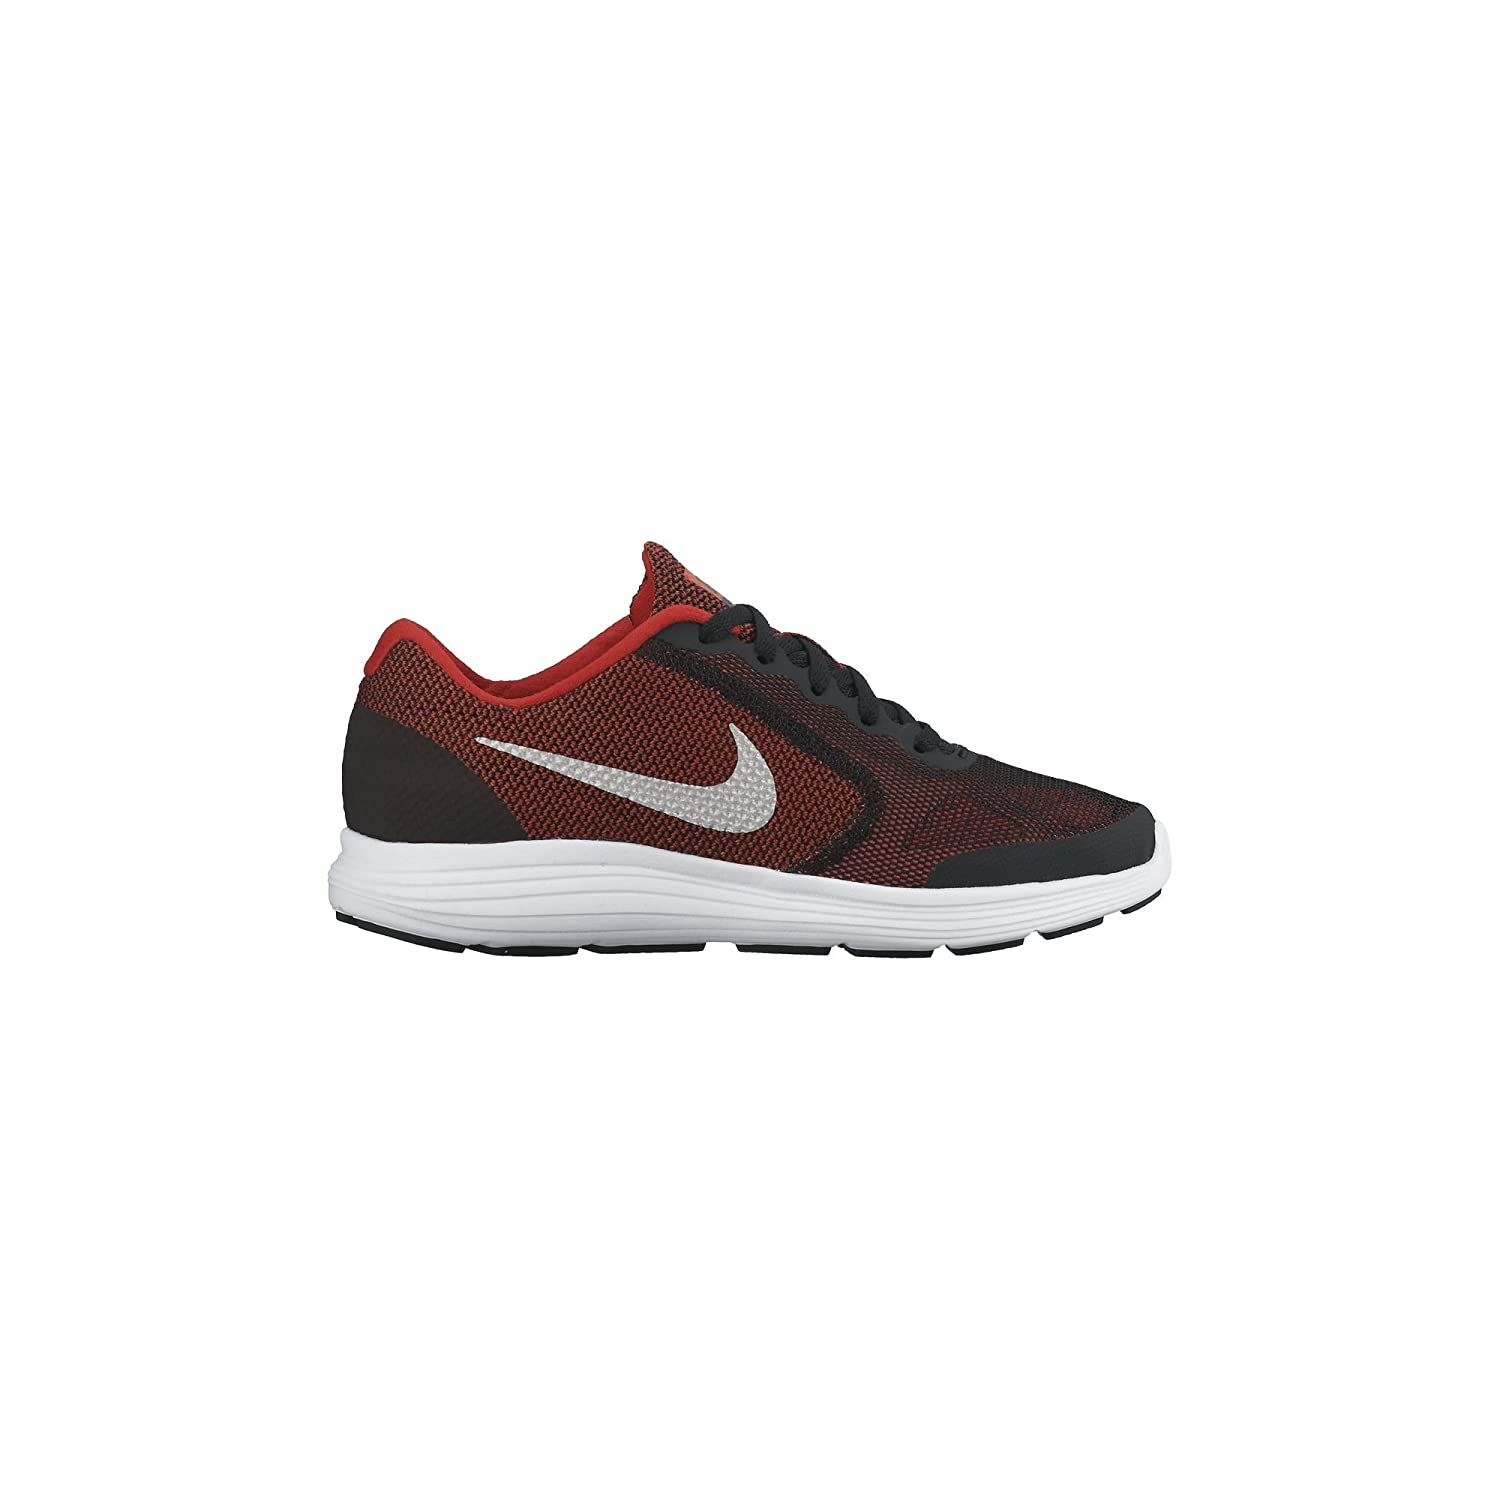 104f4e49ca4f Nike Revolution 3 Wide (gs) - Running Shoes